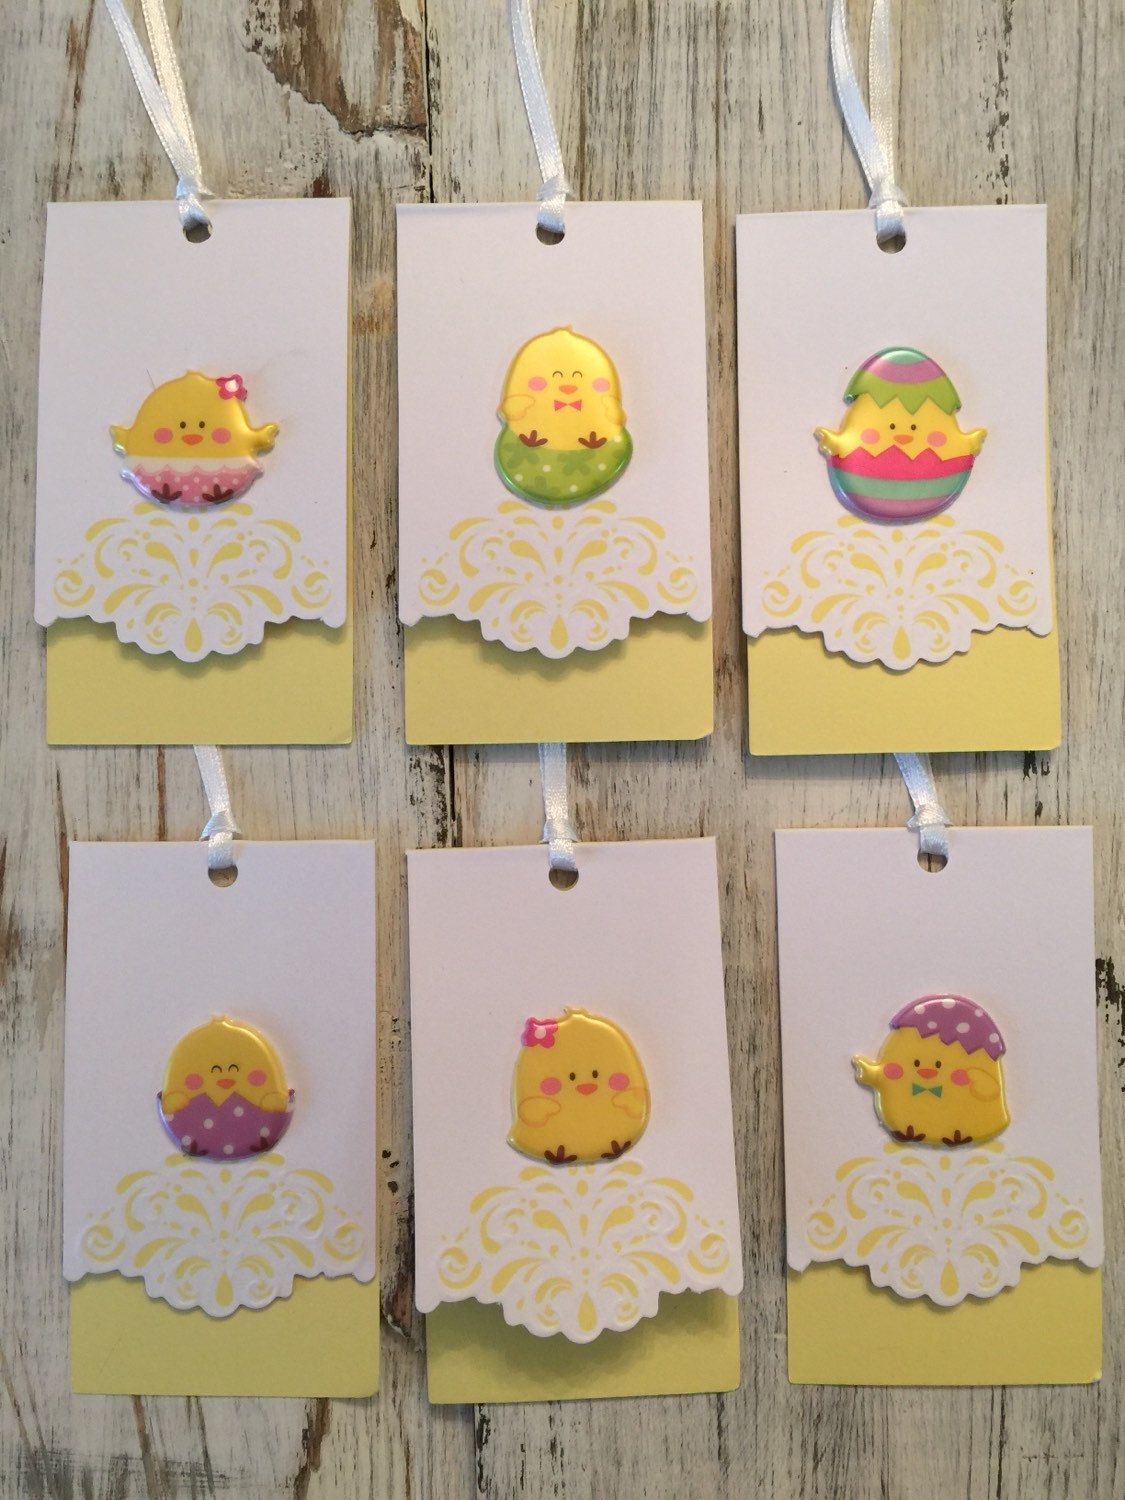 Easter cute baby chicks gift tags set of 6 puffy peeps easter cute baby chicks gift tags set of 6 puffy peeps stickers on yellow tags with satin ribbons easter basket gift tag embellishment by on etsy negle Images